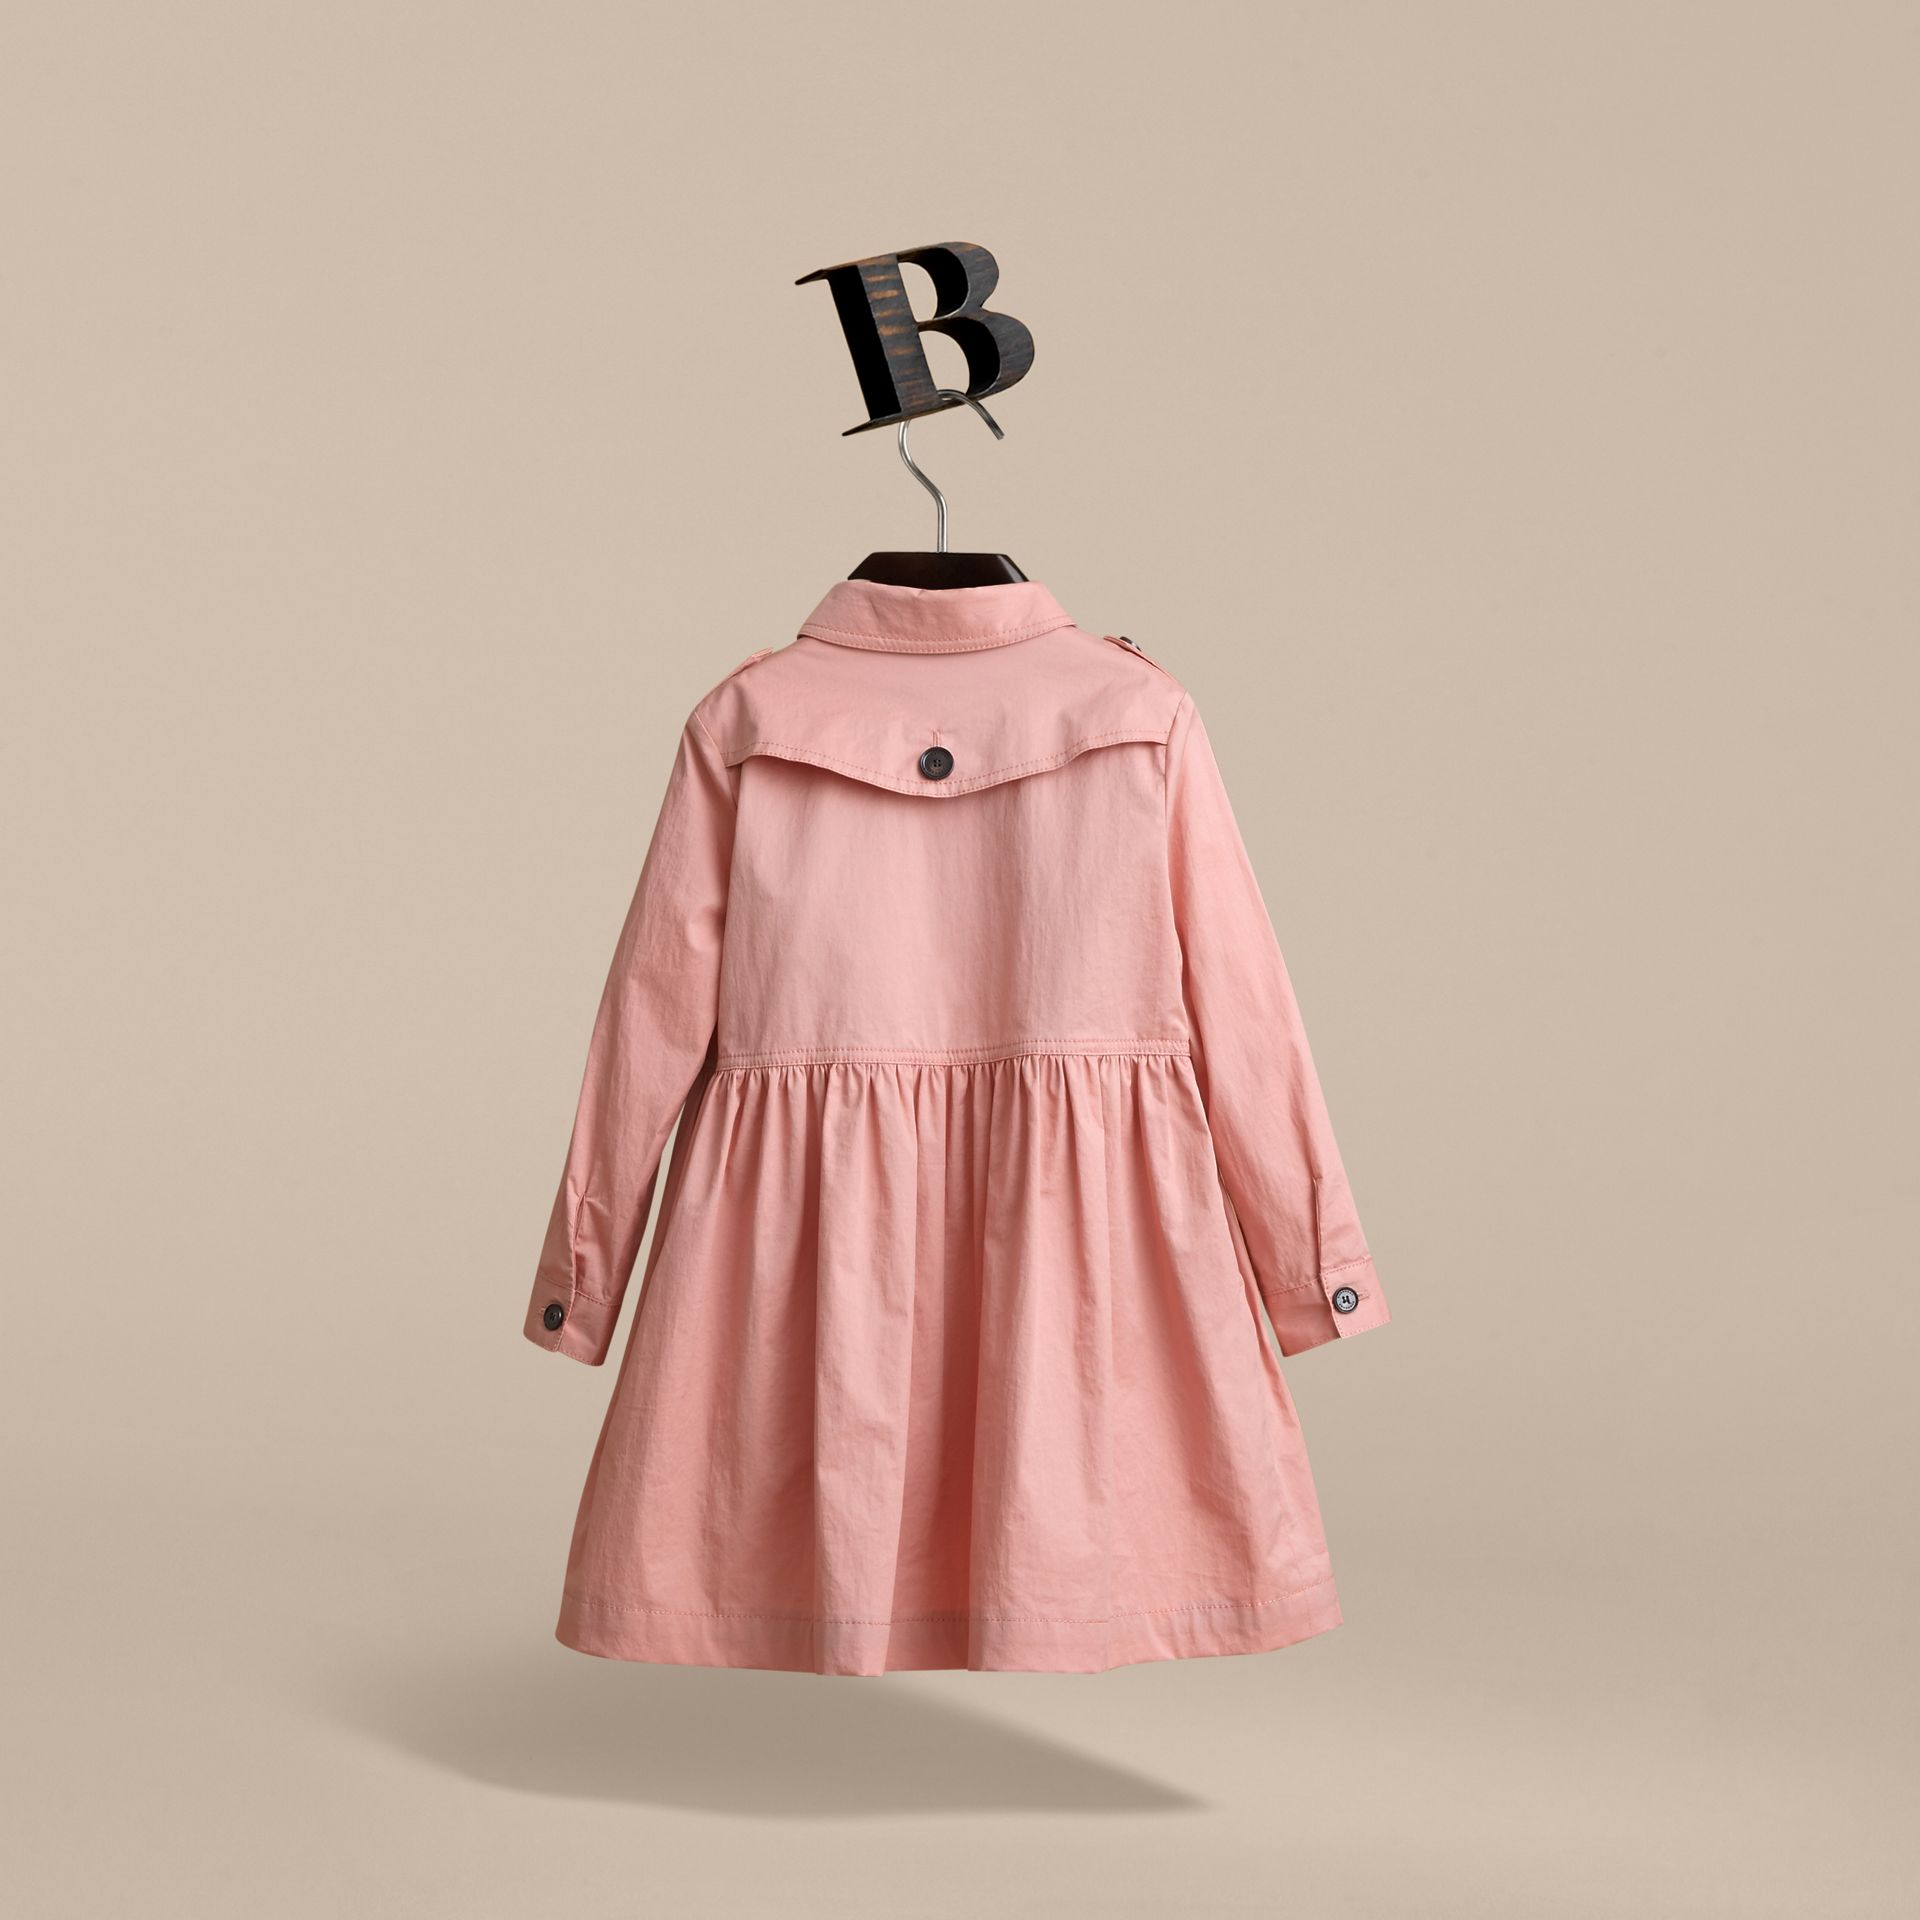 Robe trench en coton extensible avec éléments check (Rose Pâle) | Burberry - photo de la galerie 4